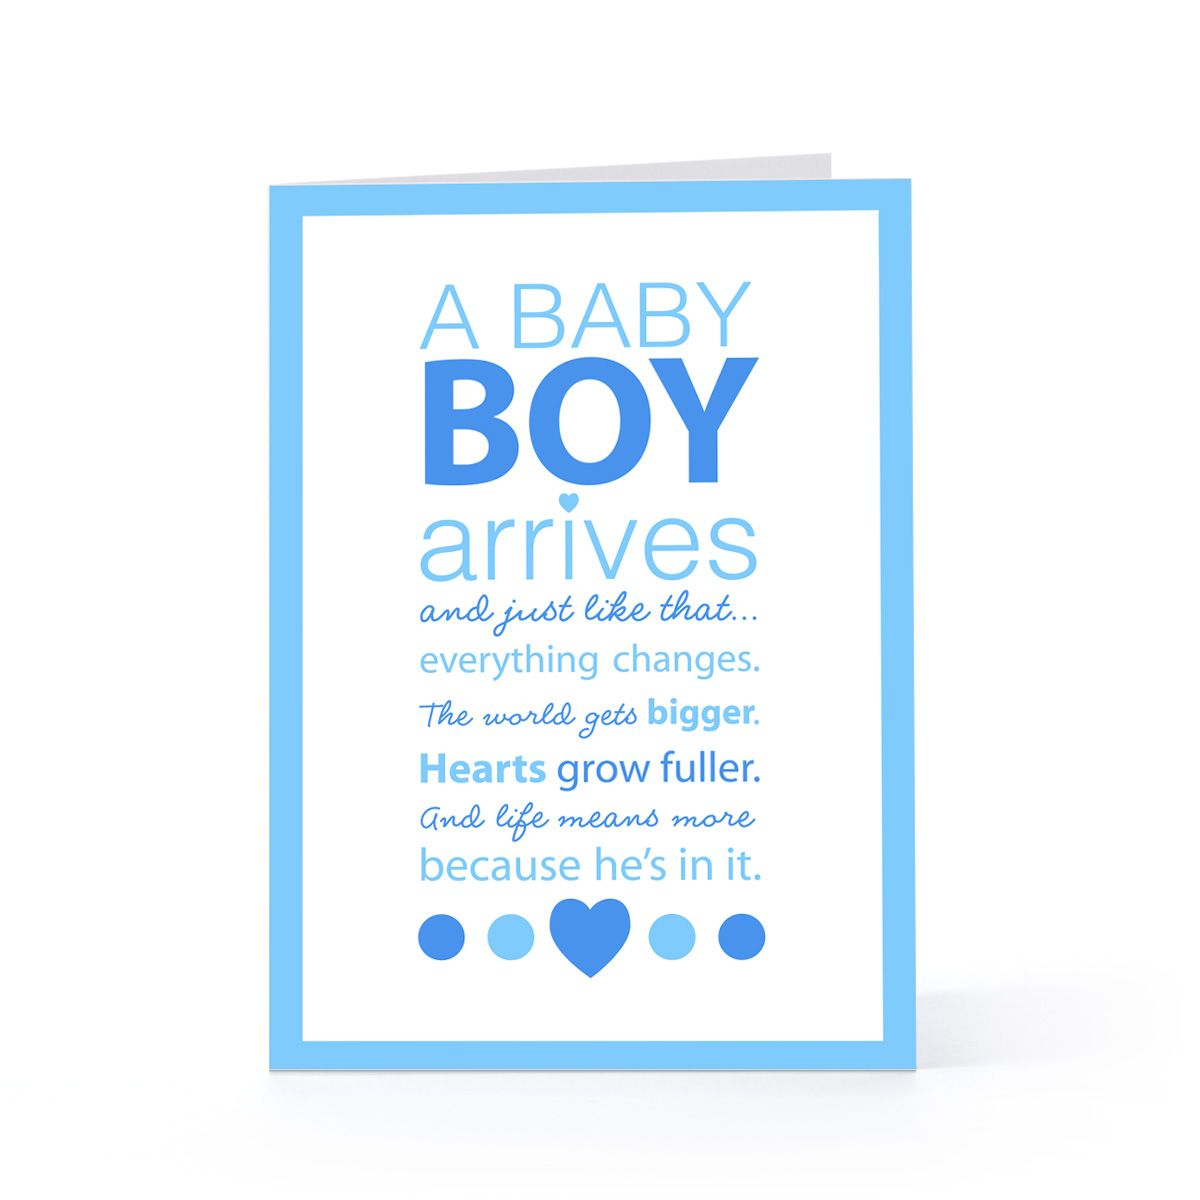 Congratulations baby boy poems images for baby boy quotes and congratulations on new baby boy messages kristyandbryce Images